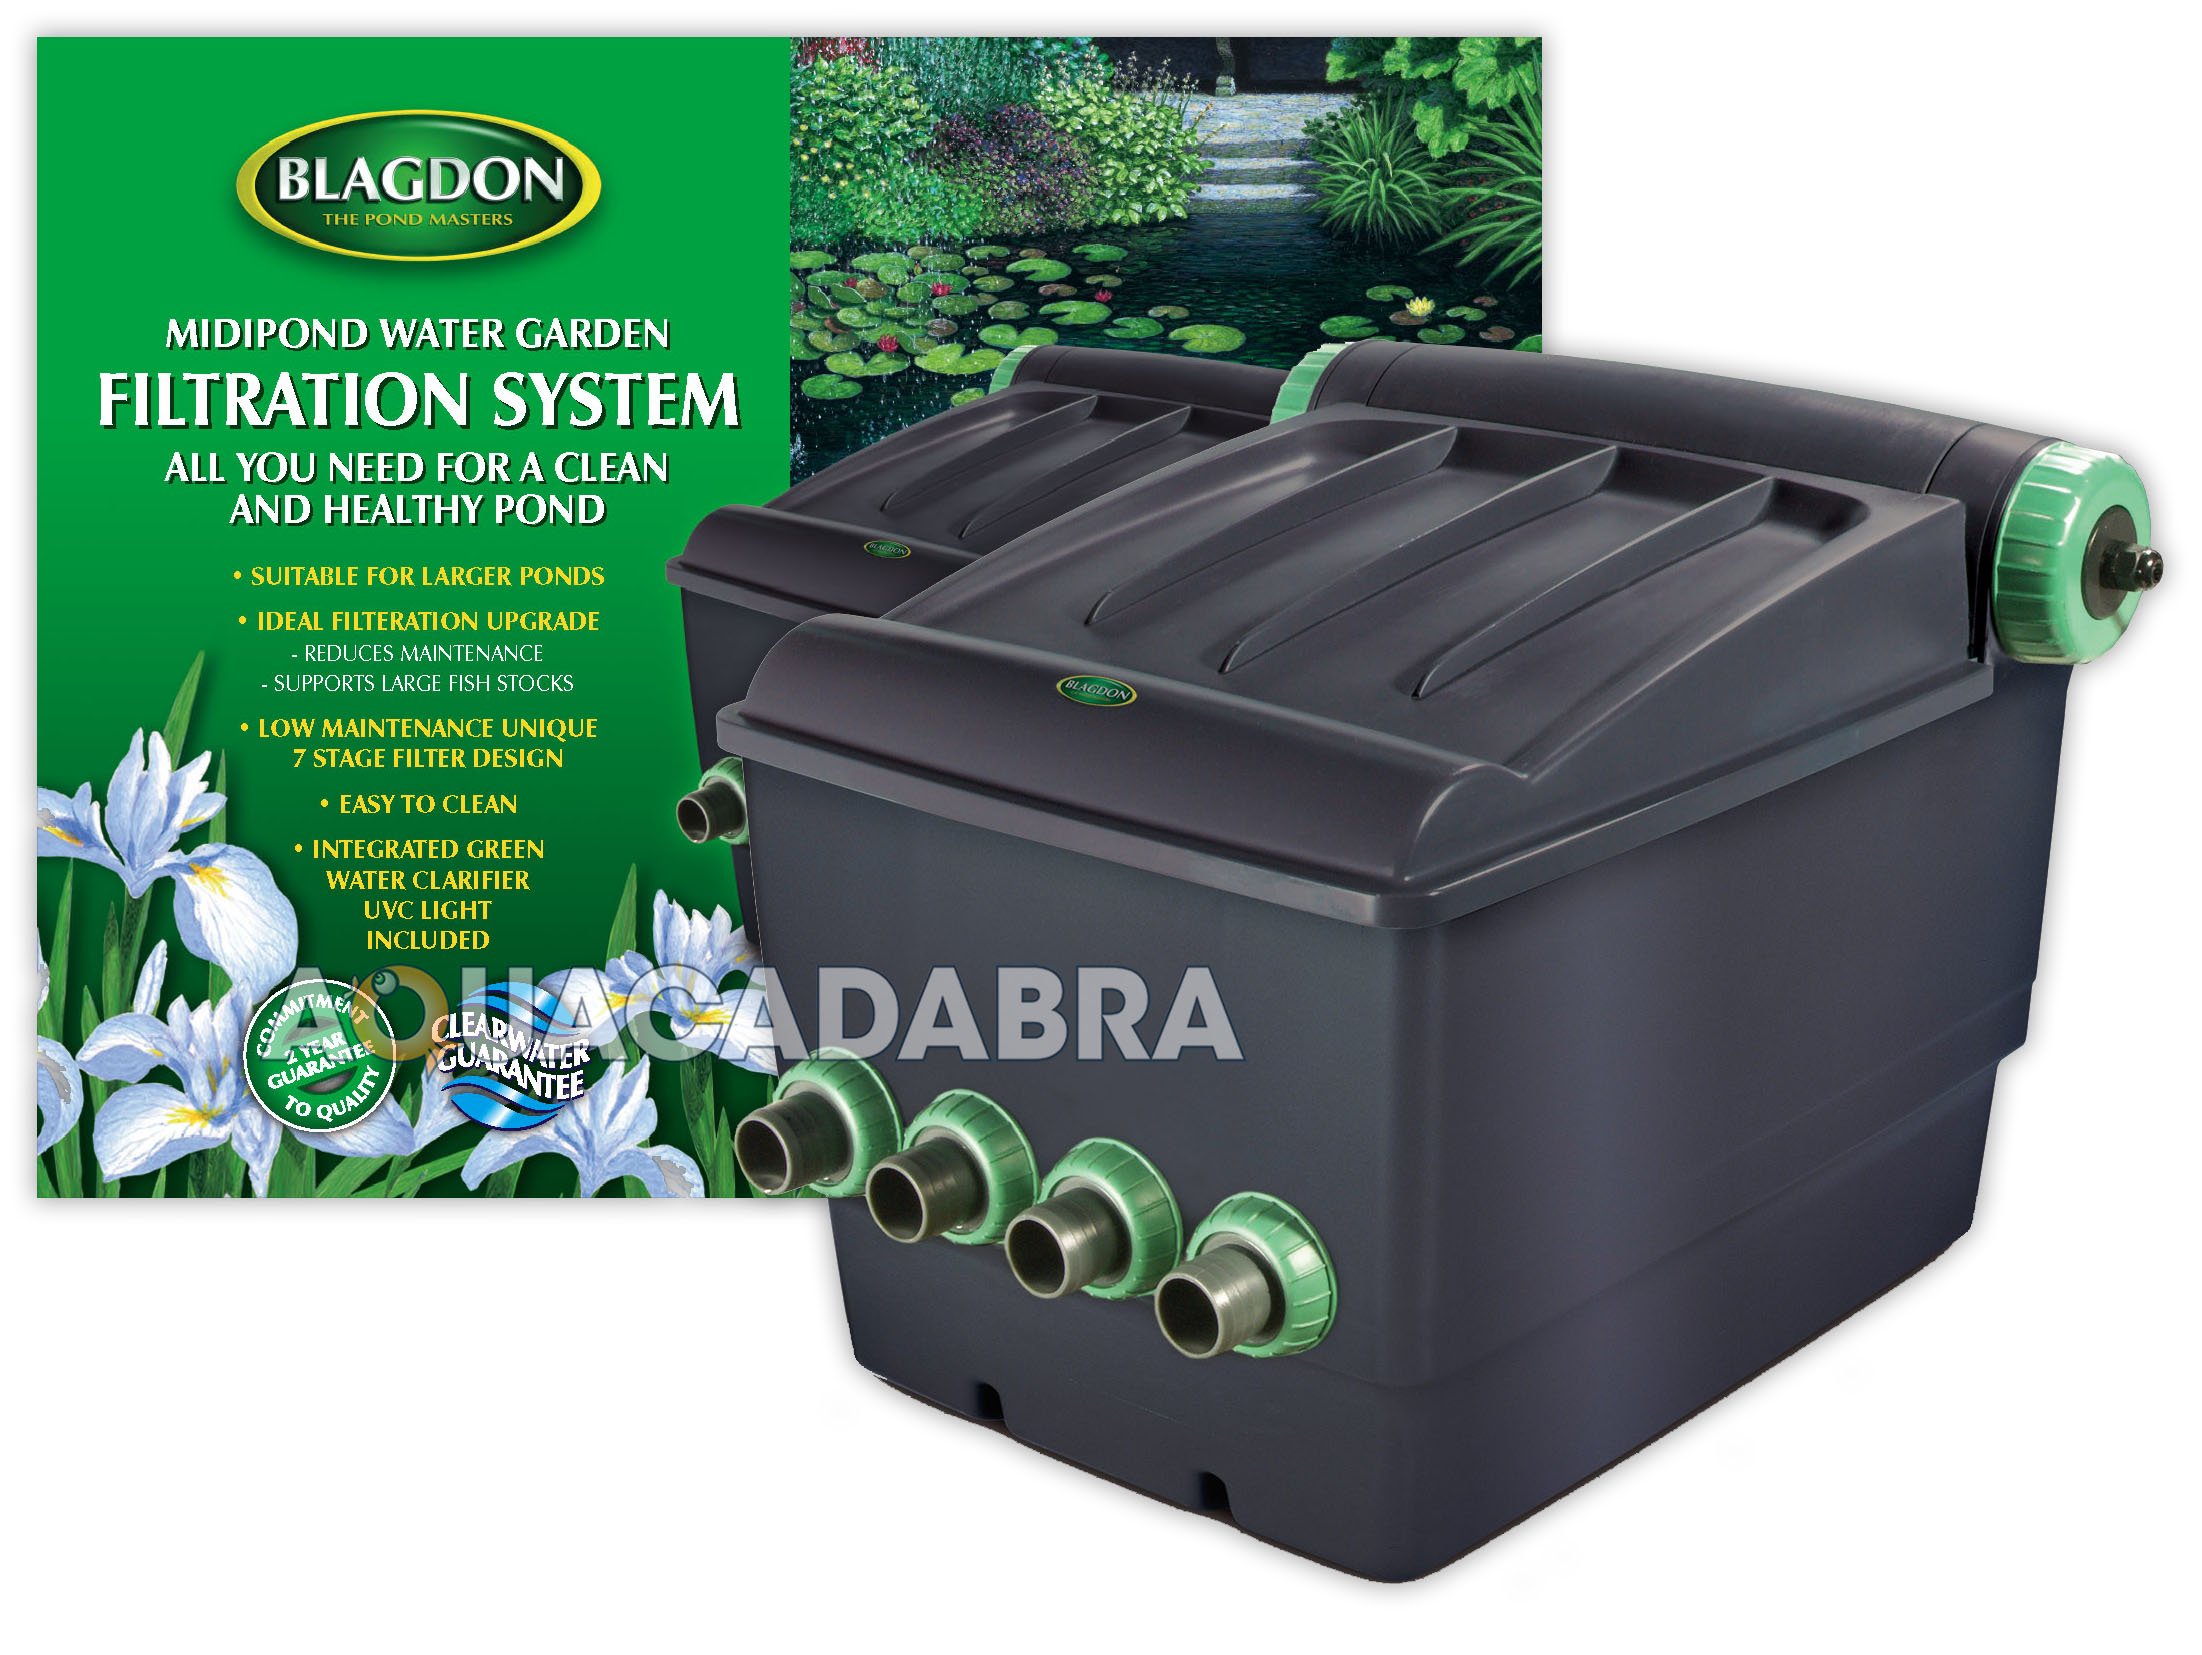 Blagdon midipond filter 10000 uv midi pond gravity uvc for Outdoor fish pond filter